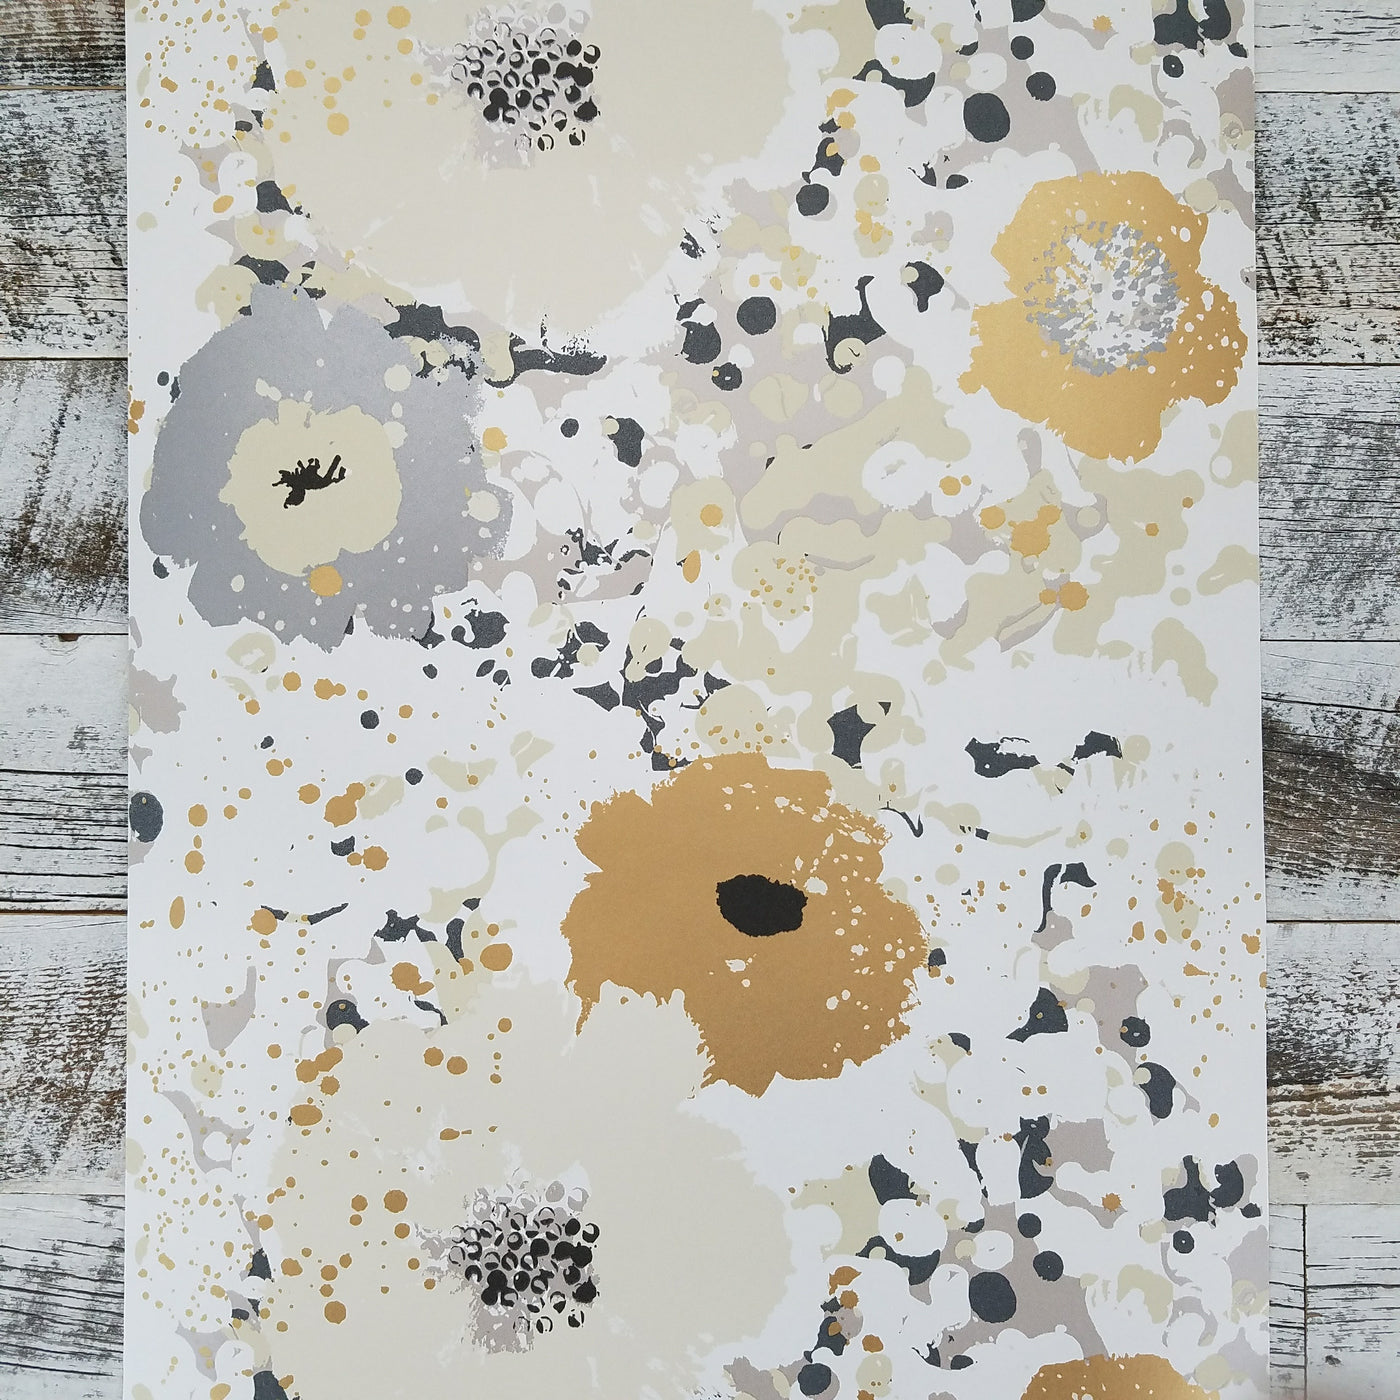 York Spontaneity Metallic Gold Silver Floral Wallpaper Ce4011